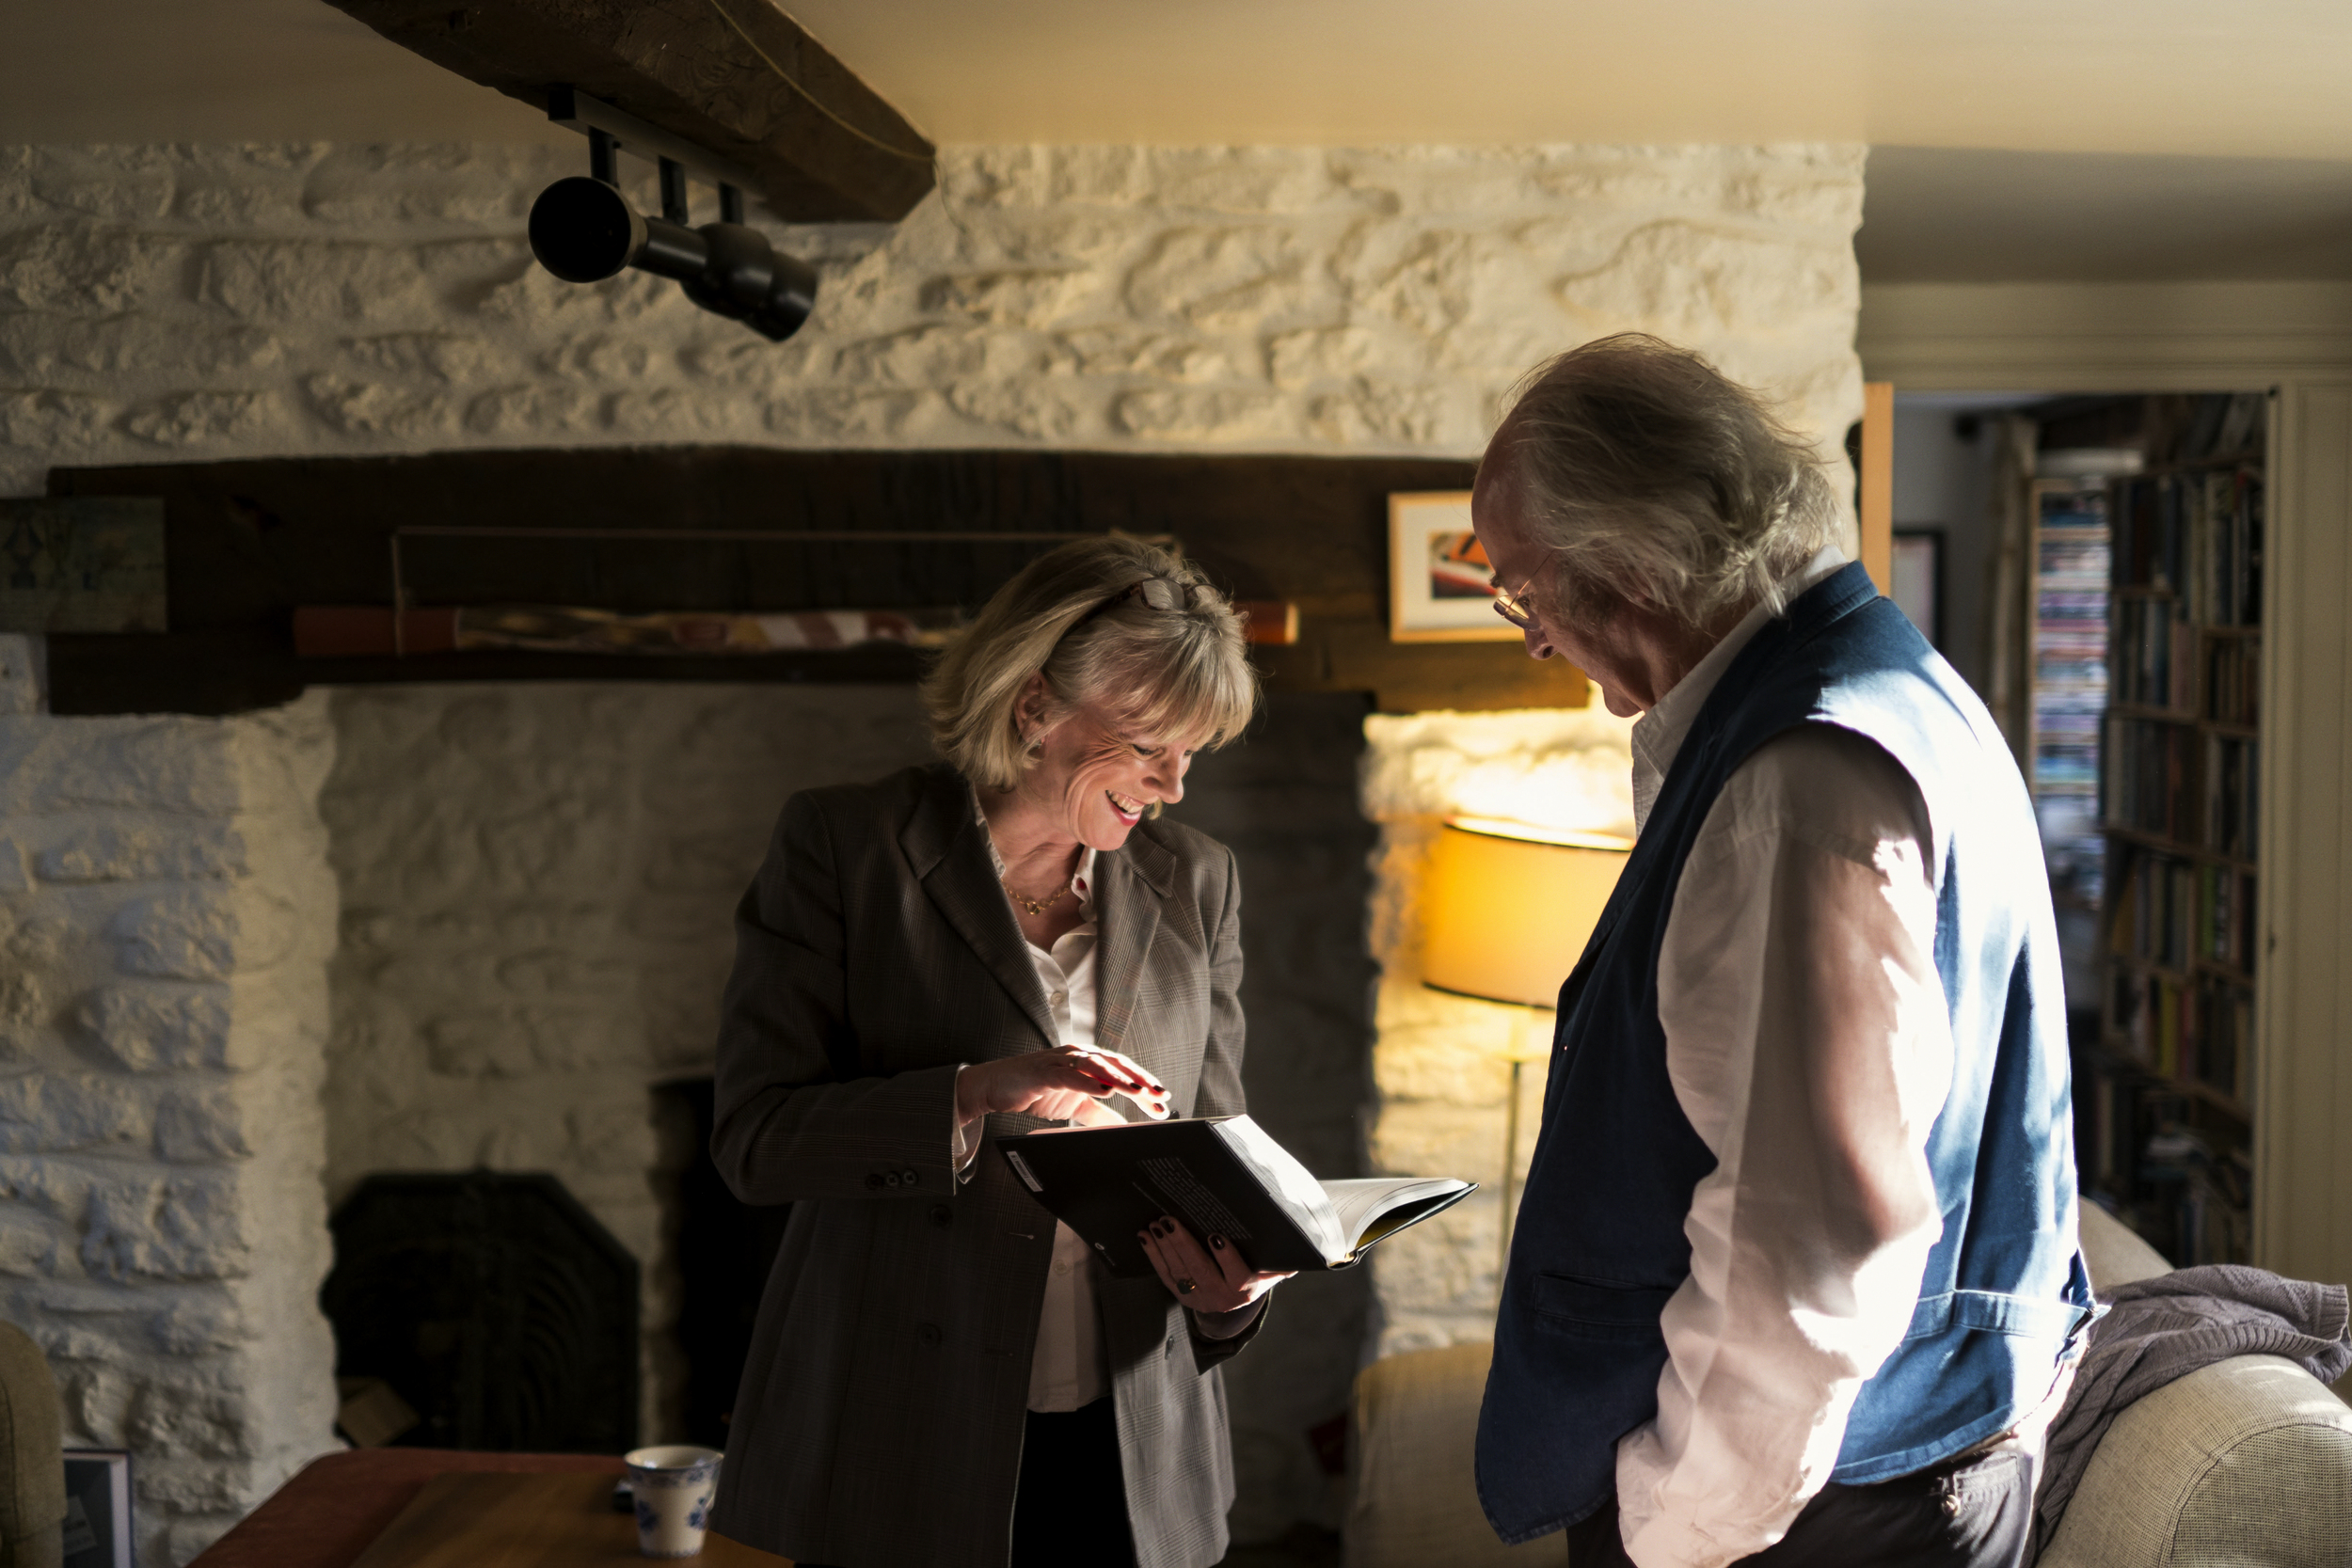 Val Coward (Producer) & Philip Pullman (Author)